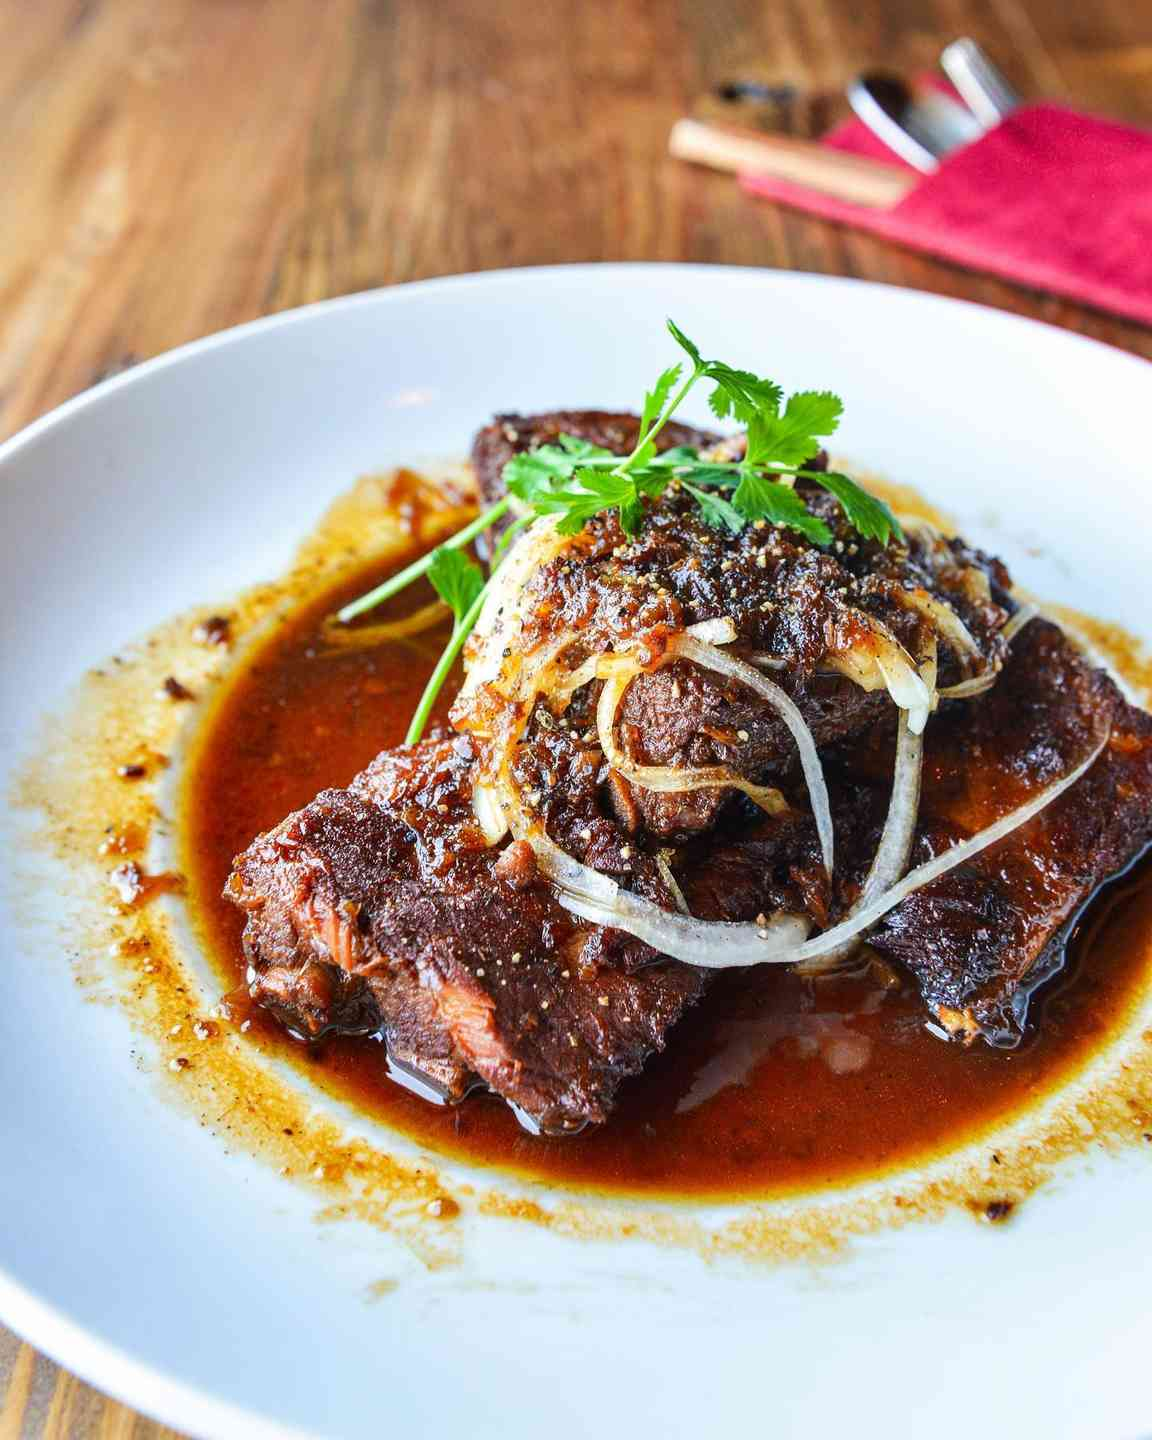 Caramelized Ribs